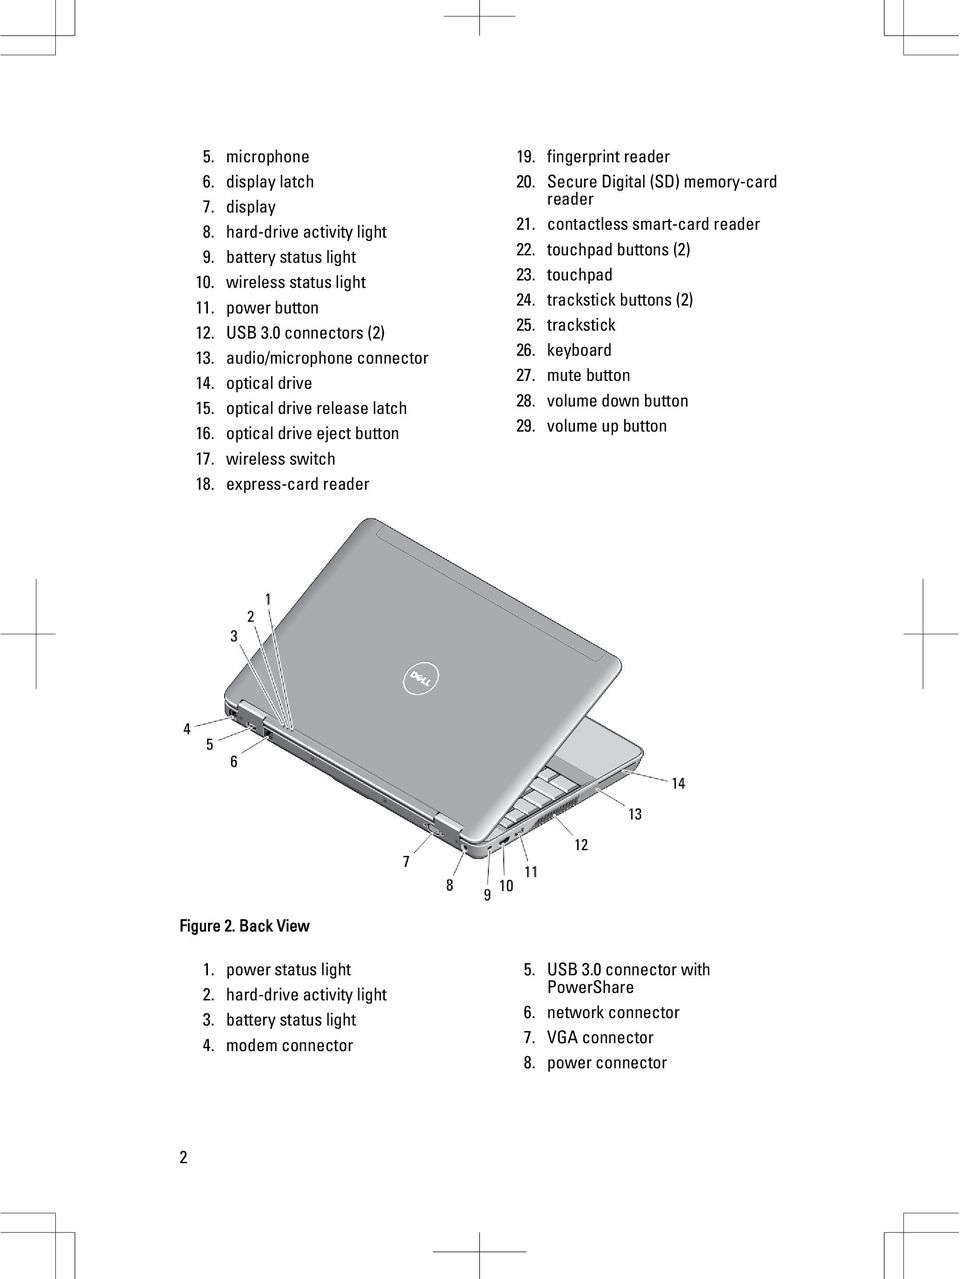 Secure Digital (SD) memory-card reader 21. contactless smart-card reader 22. touchpad buttons (2) 23. touchpad 24. trackstick buttons (2) 25. trackstick 26. keyboard 27. mute button 28.